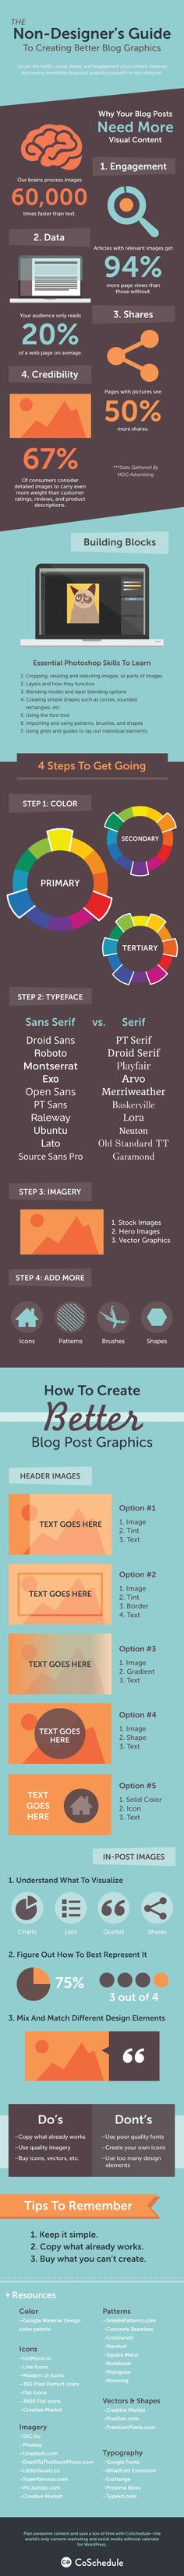 Better blog graphics mean more social shares! How to make them? Here are 4 easy steps on an infographic you can save for later. A quick start to rocking your blog graphics!